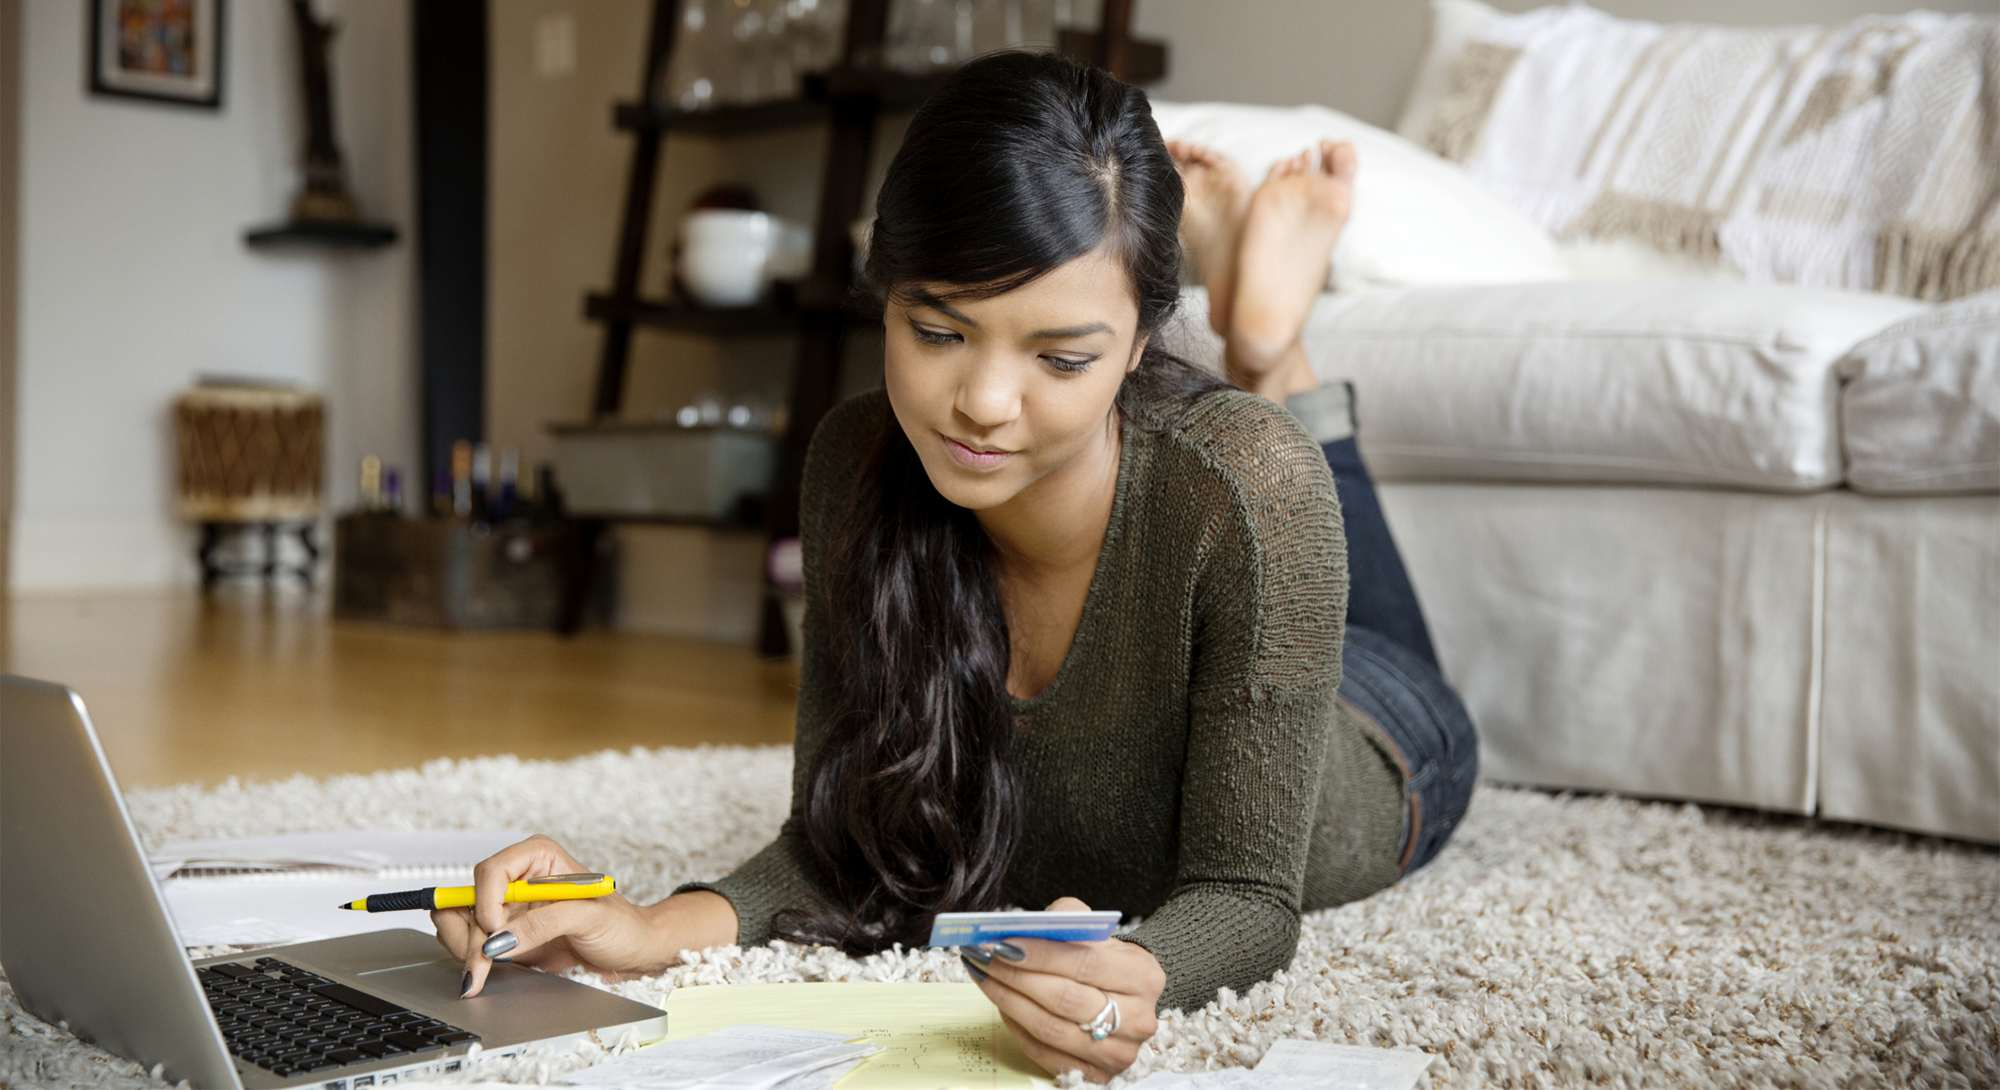 This method requires you to find a card that's suitable for someone with low credit. How To Get Your First Credit Card